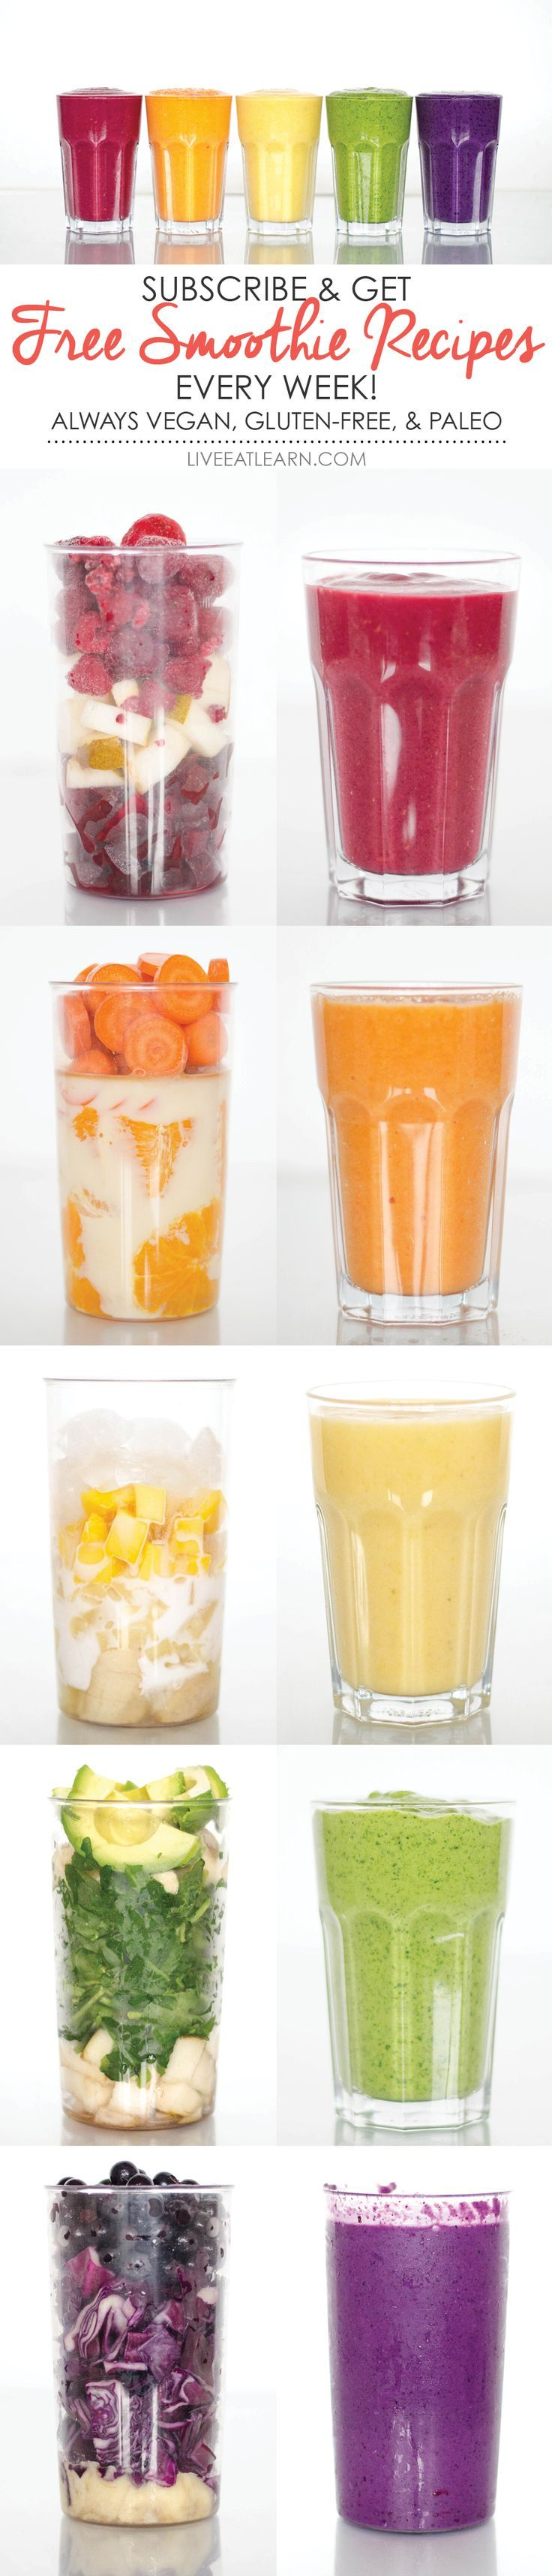 Healthy smoothie recipes to give you the boost of energy you need on Monday morning, delivered right to your inbox each week! Perfect as a quick, on the go meal, for breakfast, and for the whole family. Always compatible with a vegan, vegetarian, paleo, gluten-free, and whole foods diet. // Live Eat Learn